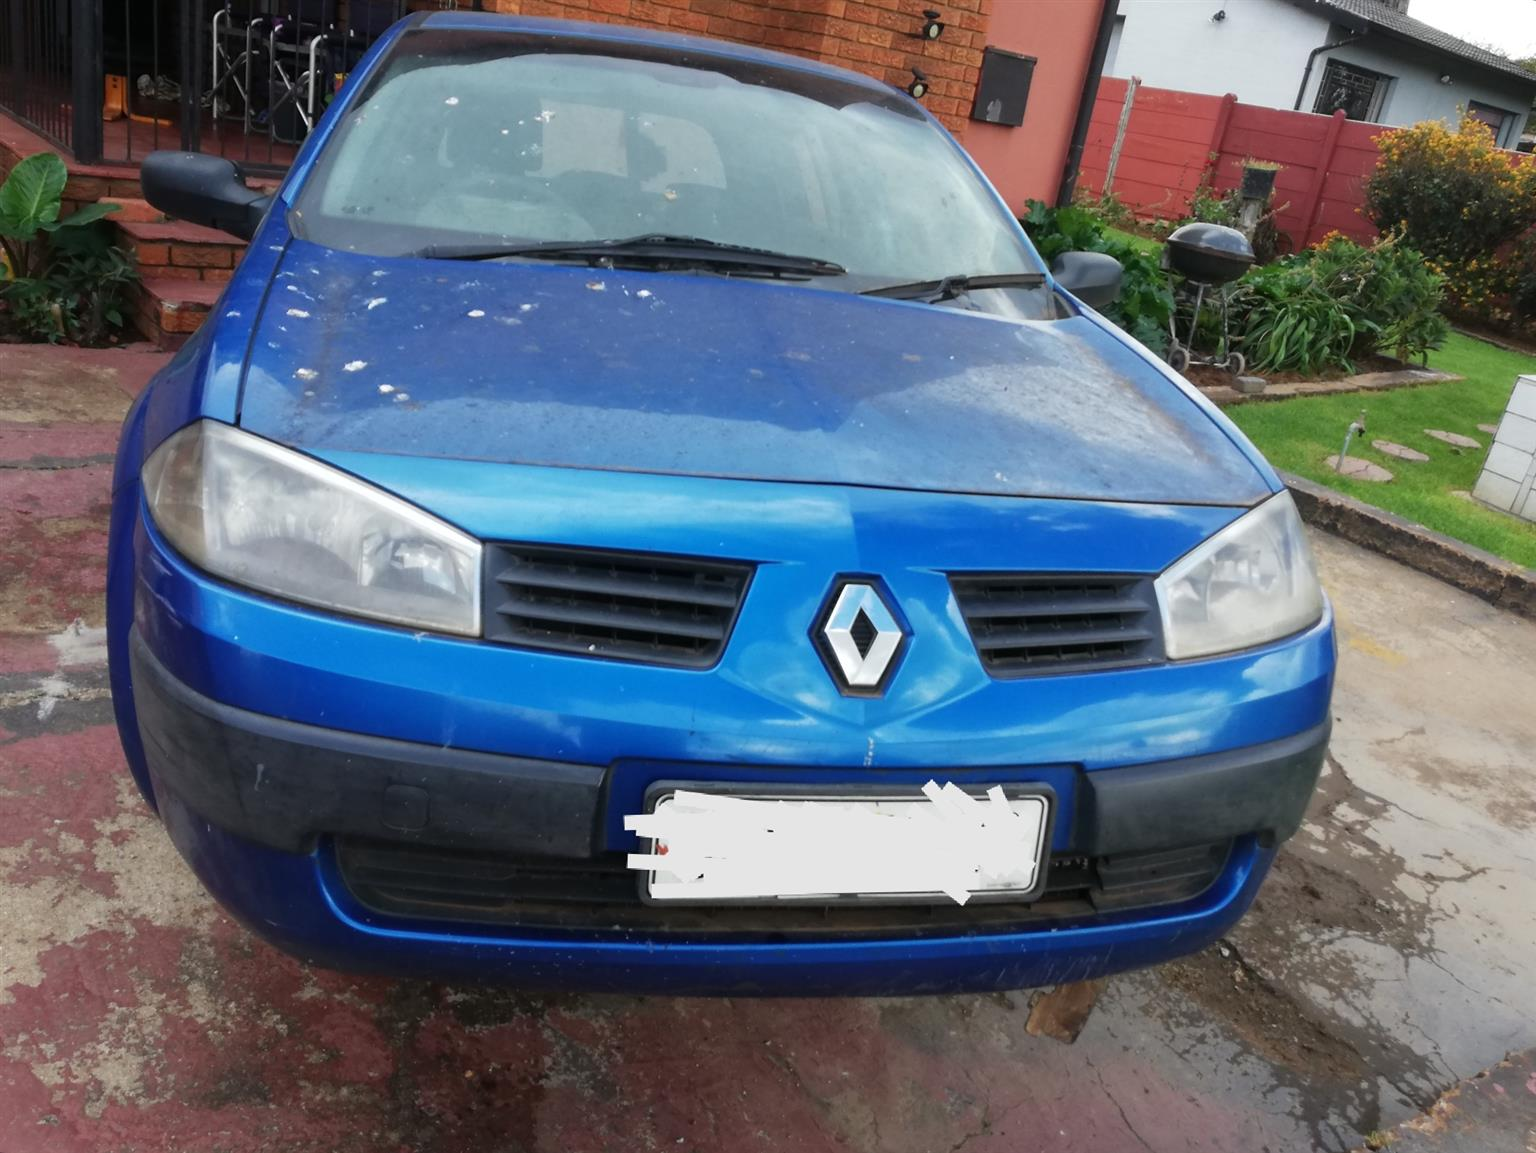 Renault Megane 2004 seats front and back